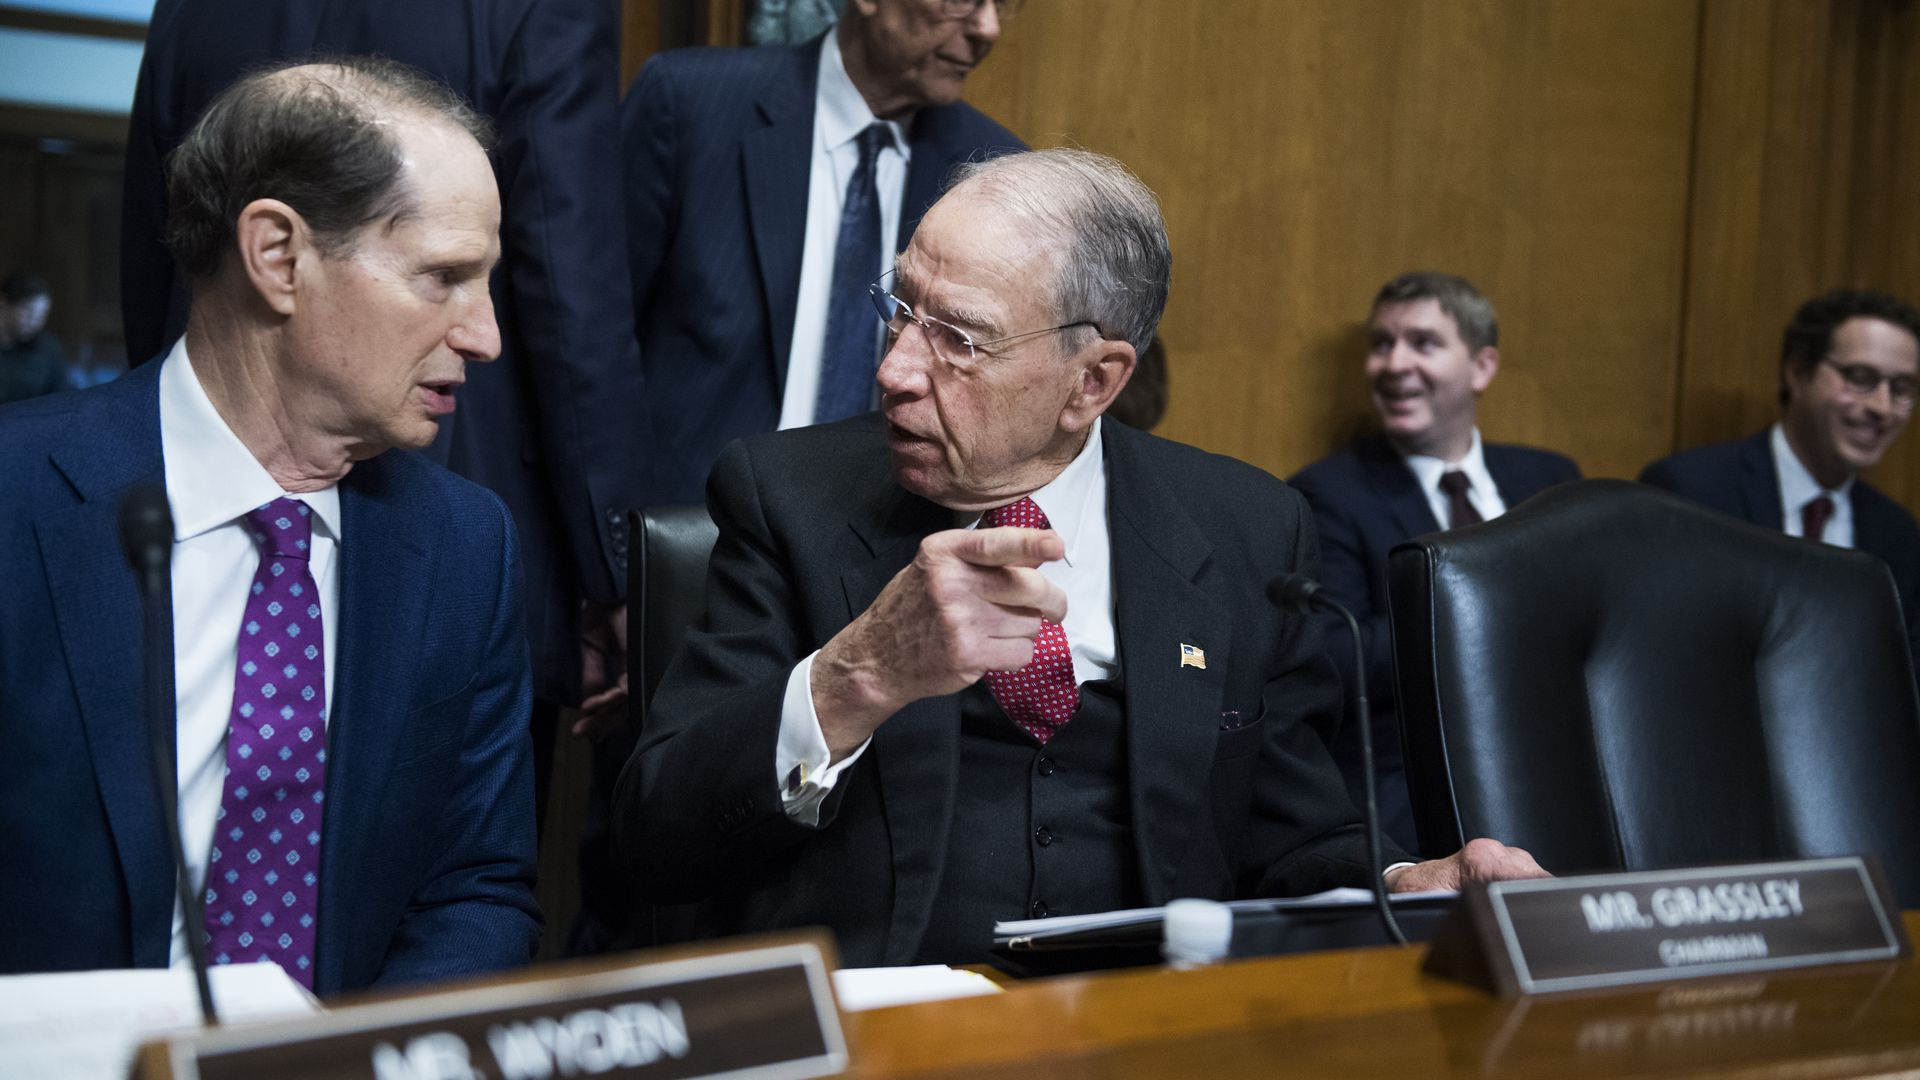 Sens. Ron Wyden and Chuck Grassley